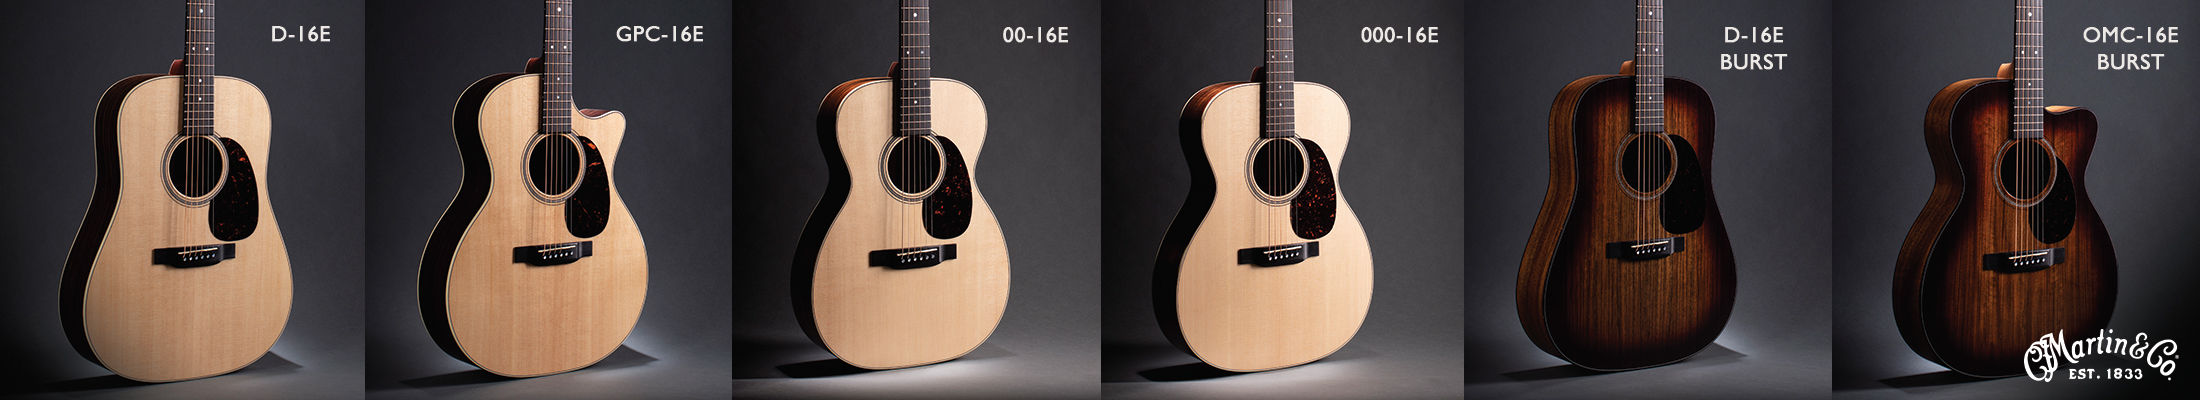 Martin Guitar 16 Series strip Summer NAMM